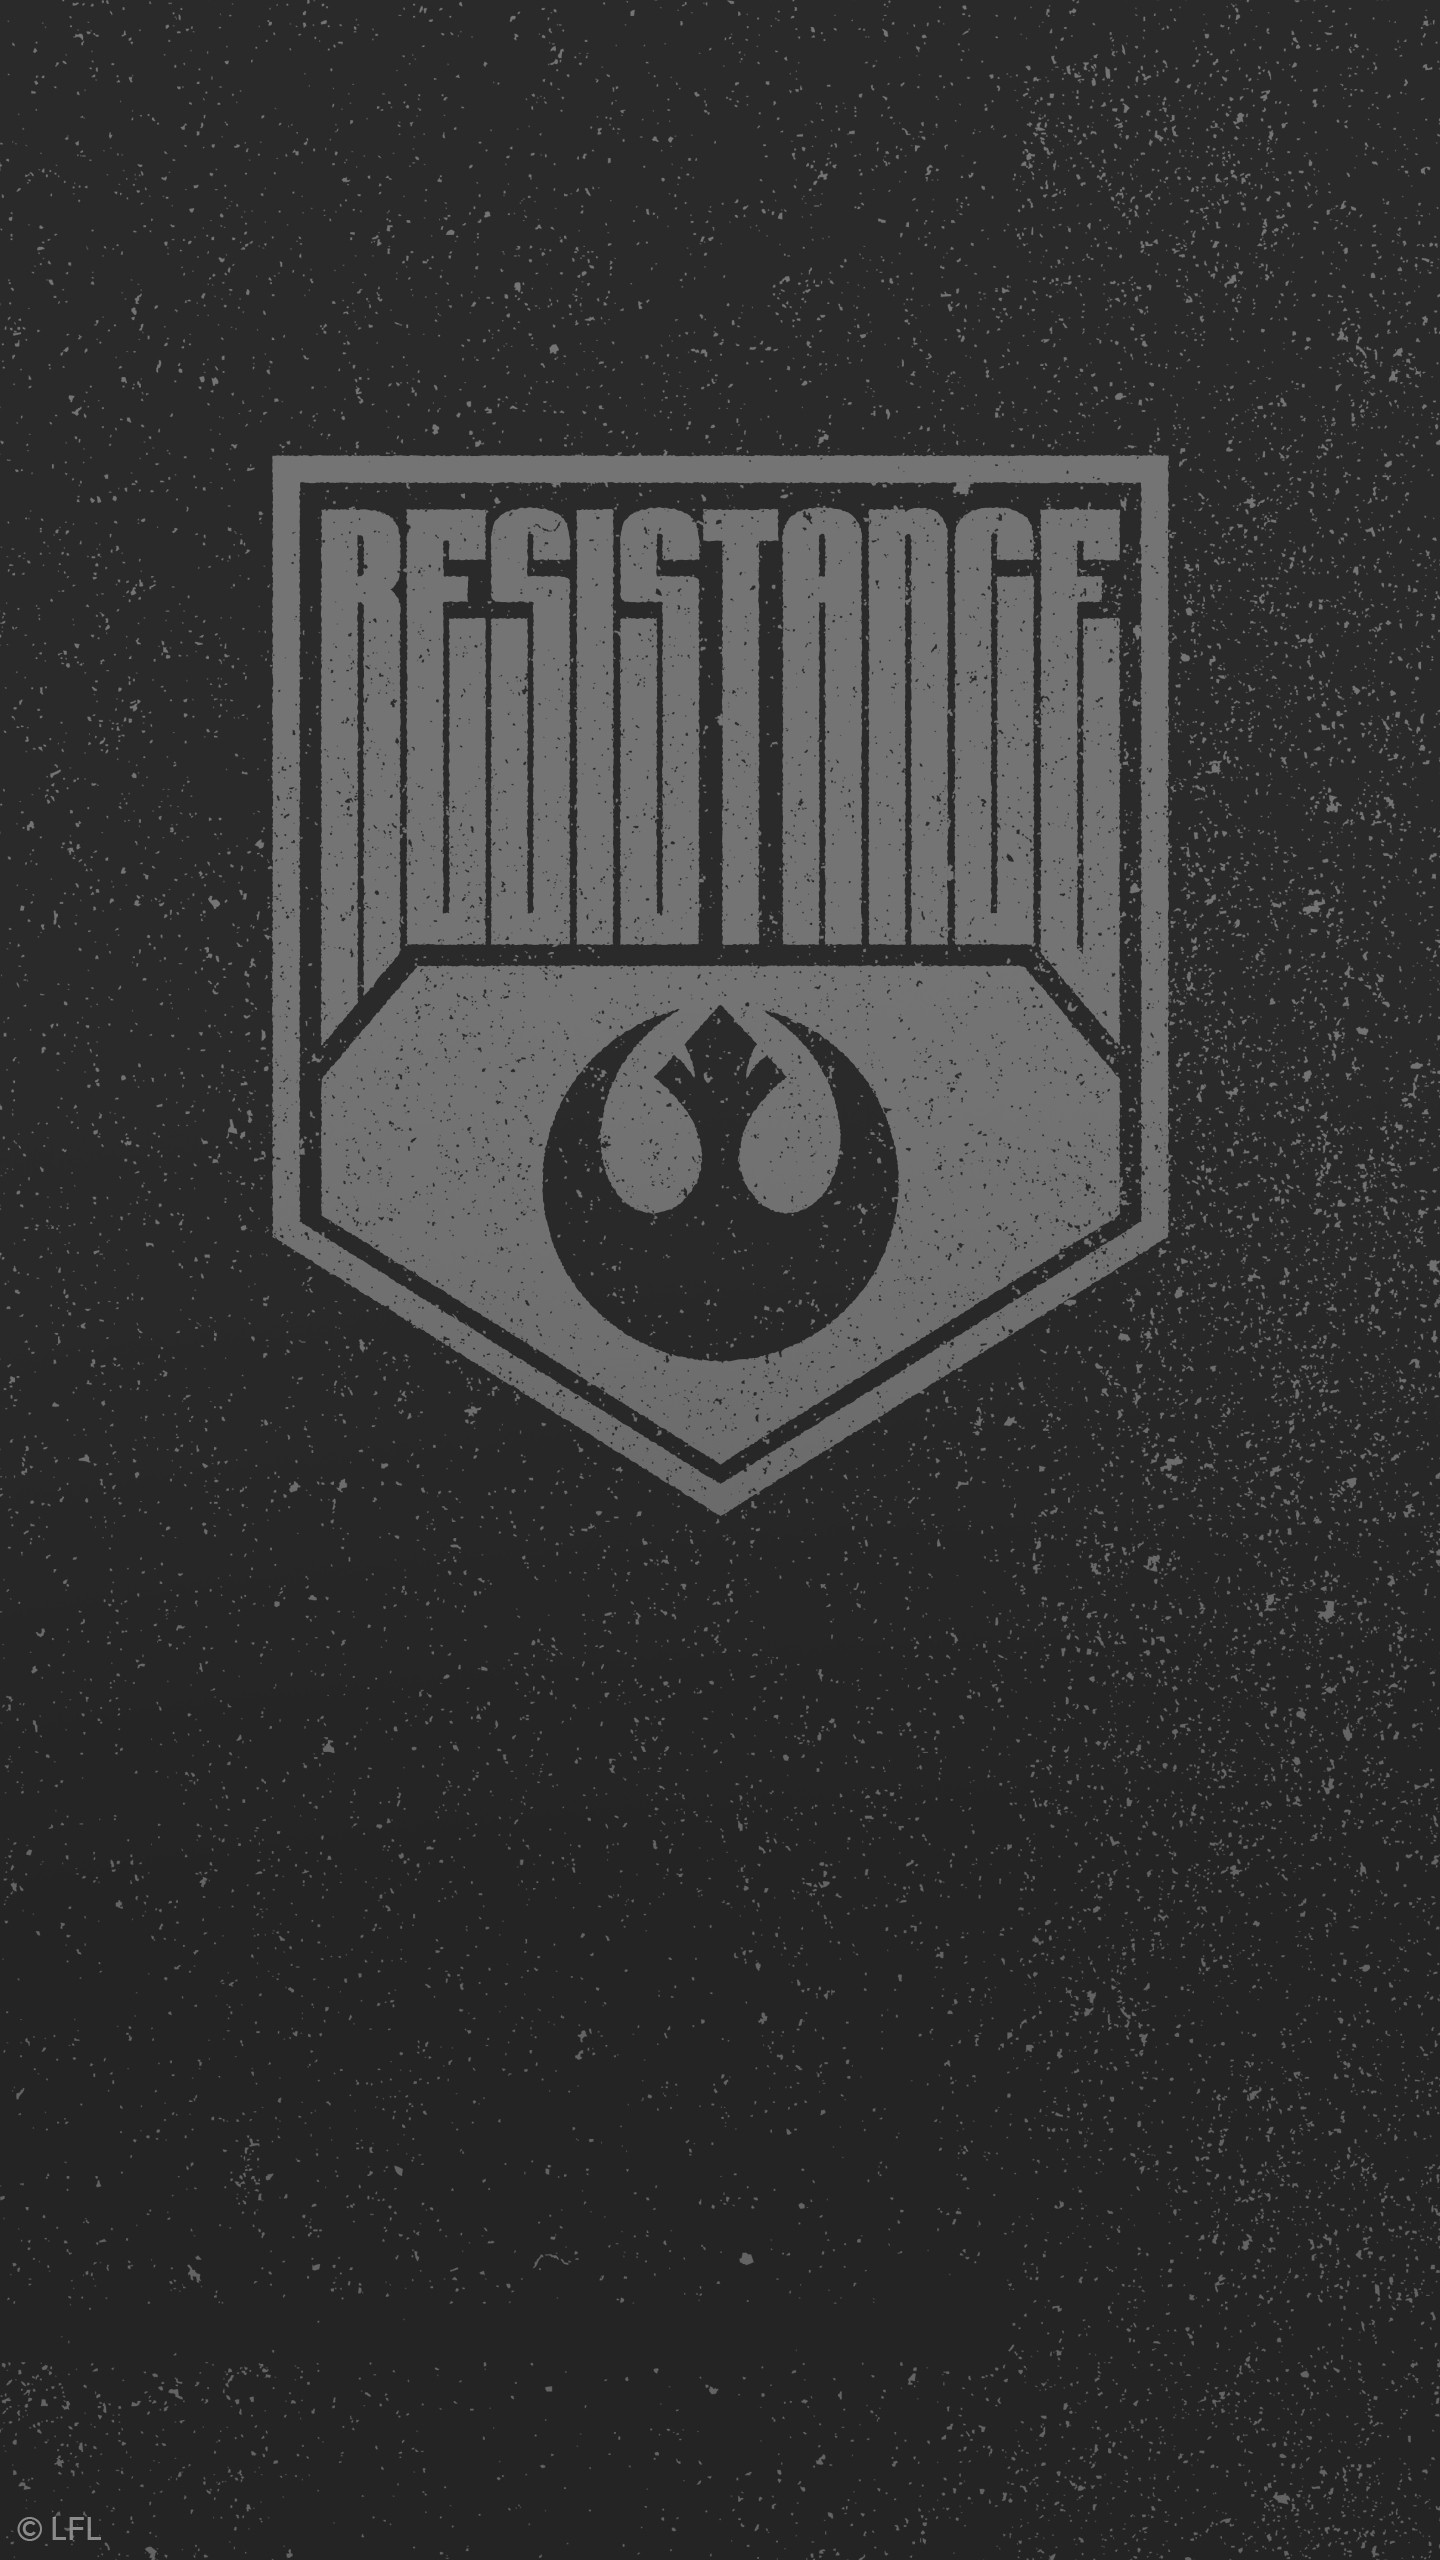 Resistance Star Wars Resistance Sticker 1440x2560 Download Hd Wallpaper Wallpapertip